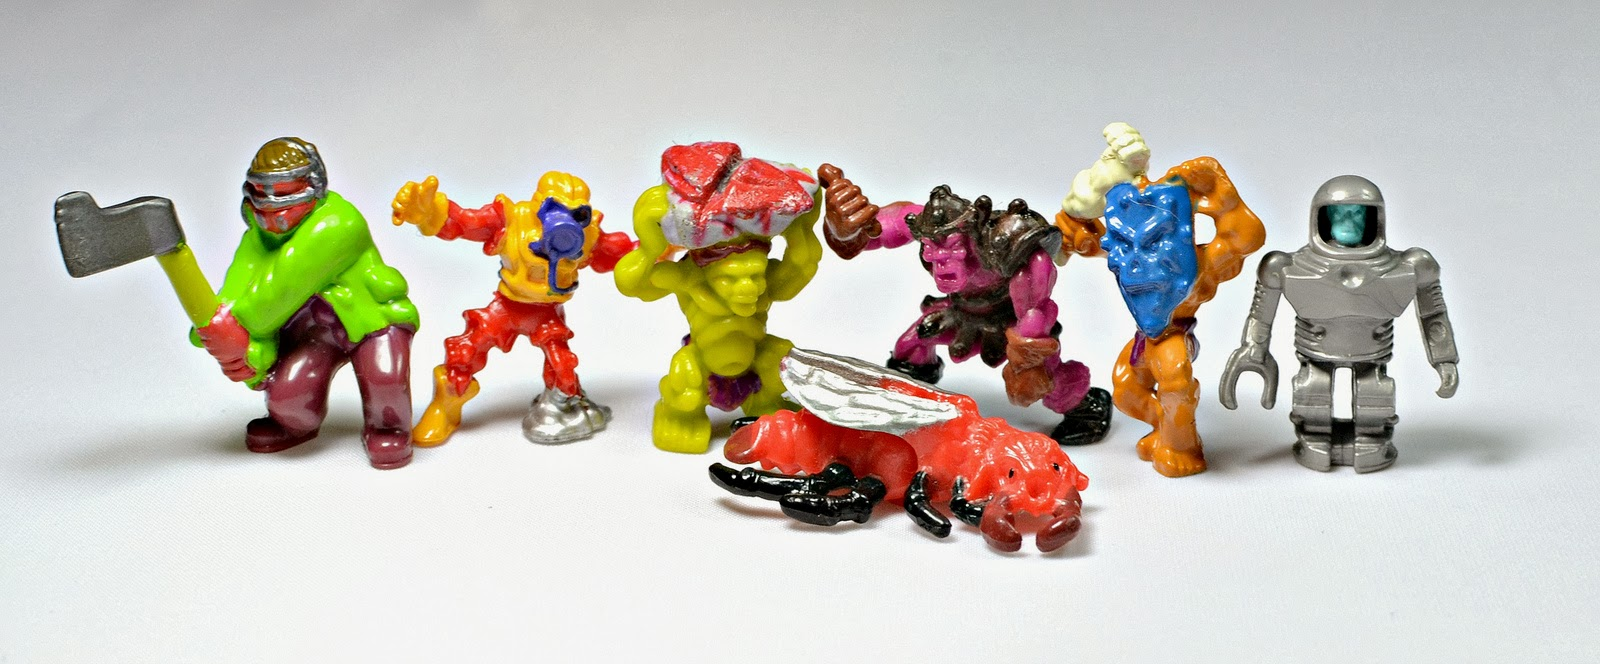 Building Toys From The 90s : Little weirdos mini figures and other monster toys